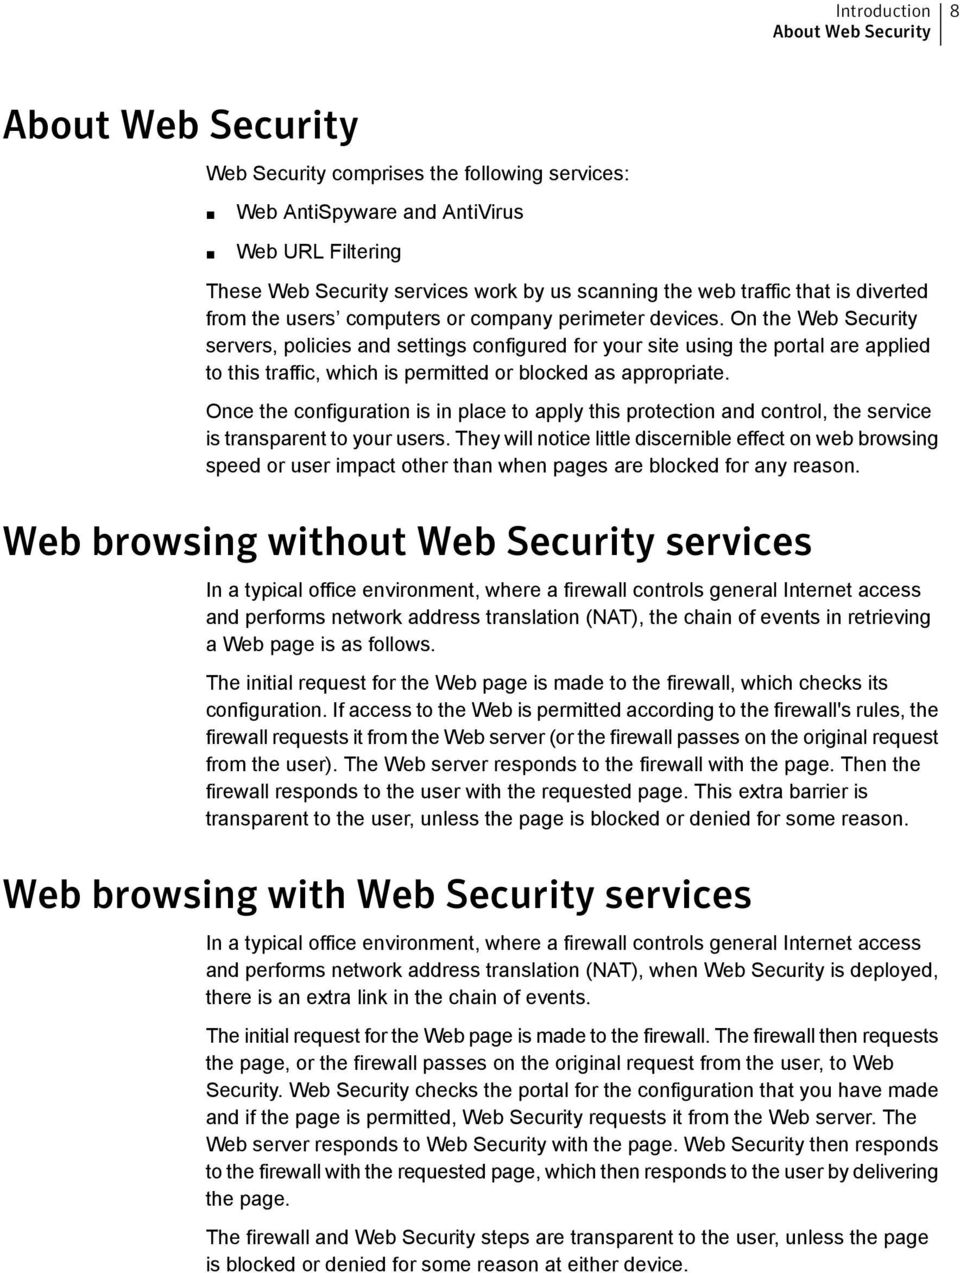 On the Web Security servers, policies and settings configured for your site using the portal are applied to this traffic, which is permitted or blocked as appropriate.